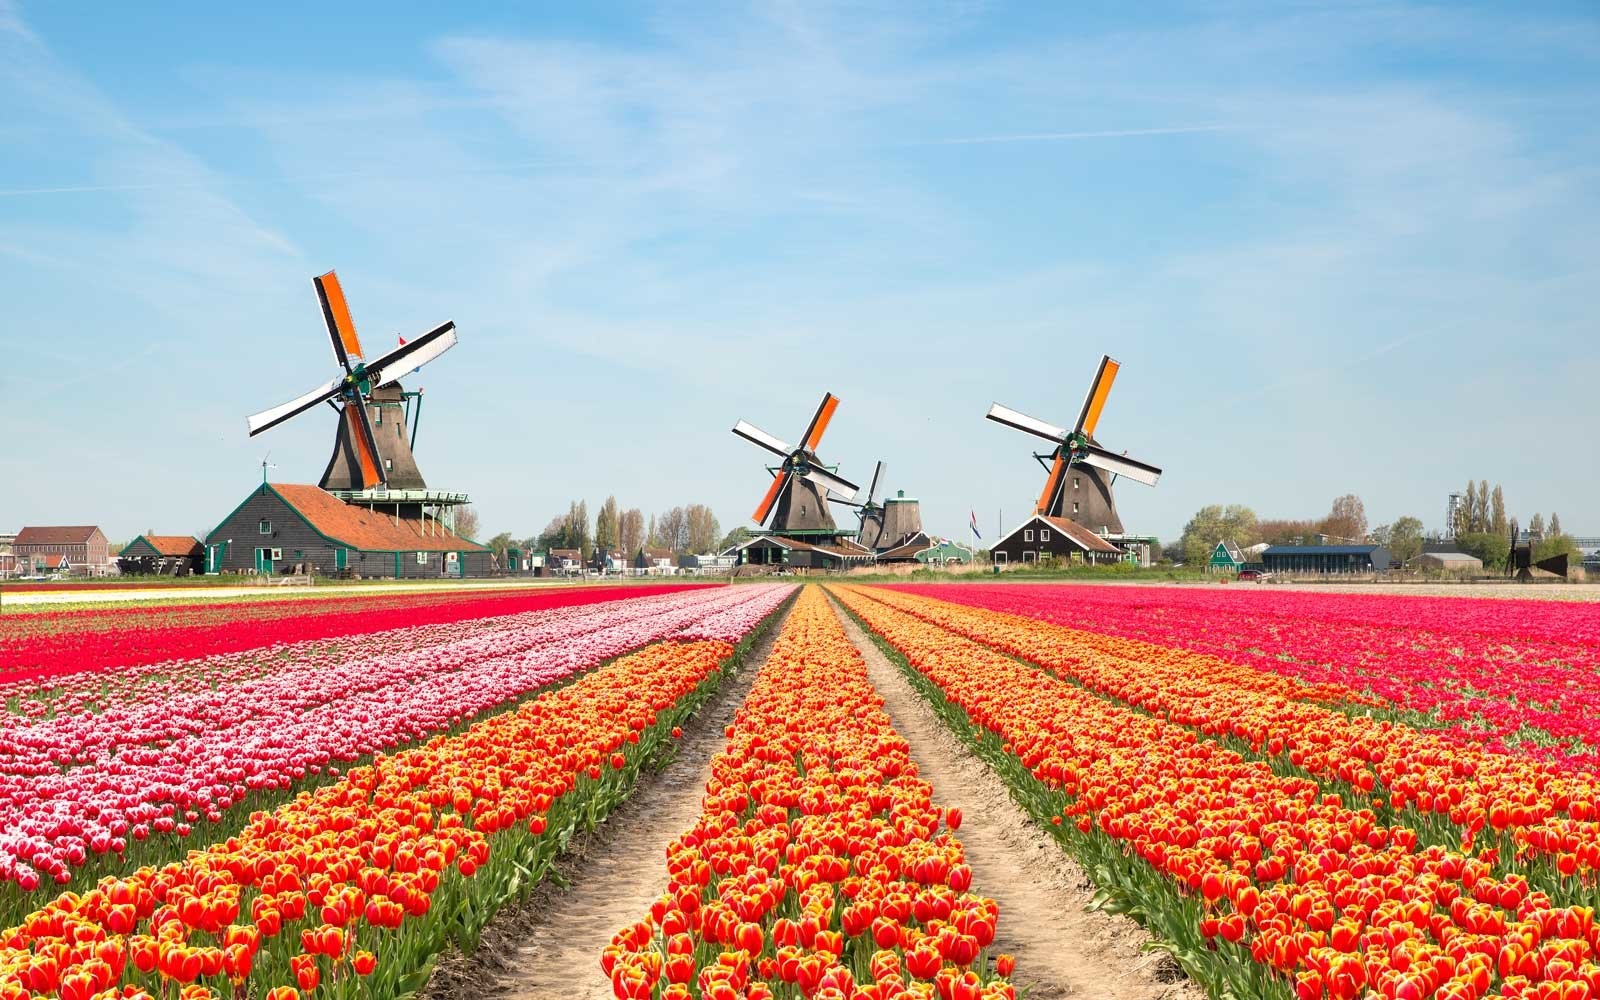 Landscape of Netherlands with tulips and windmills.